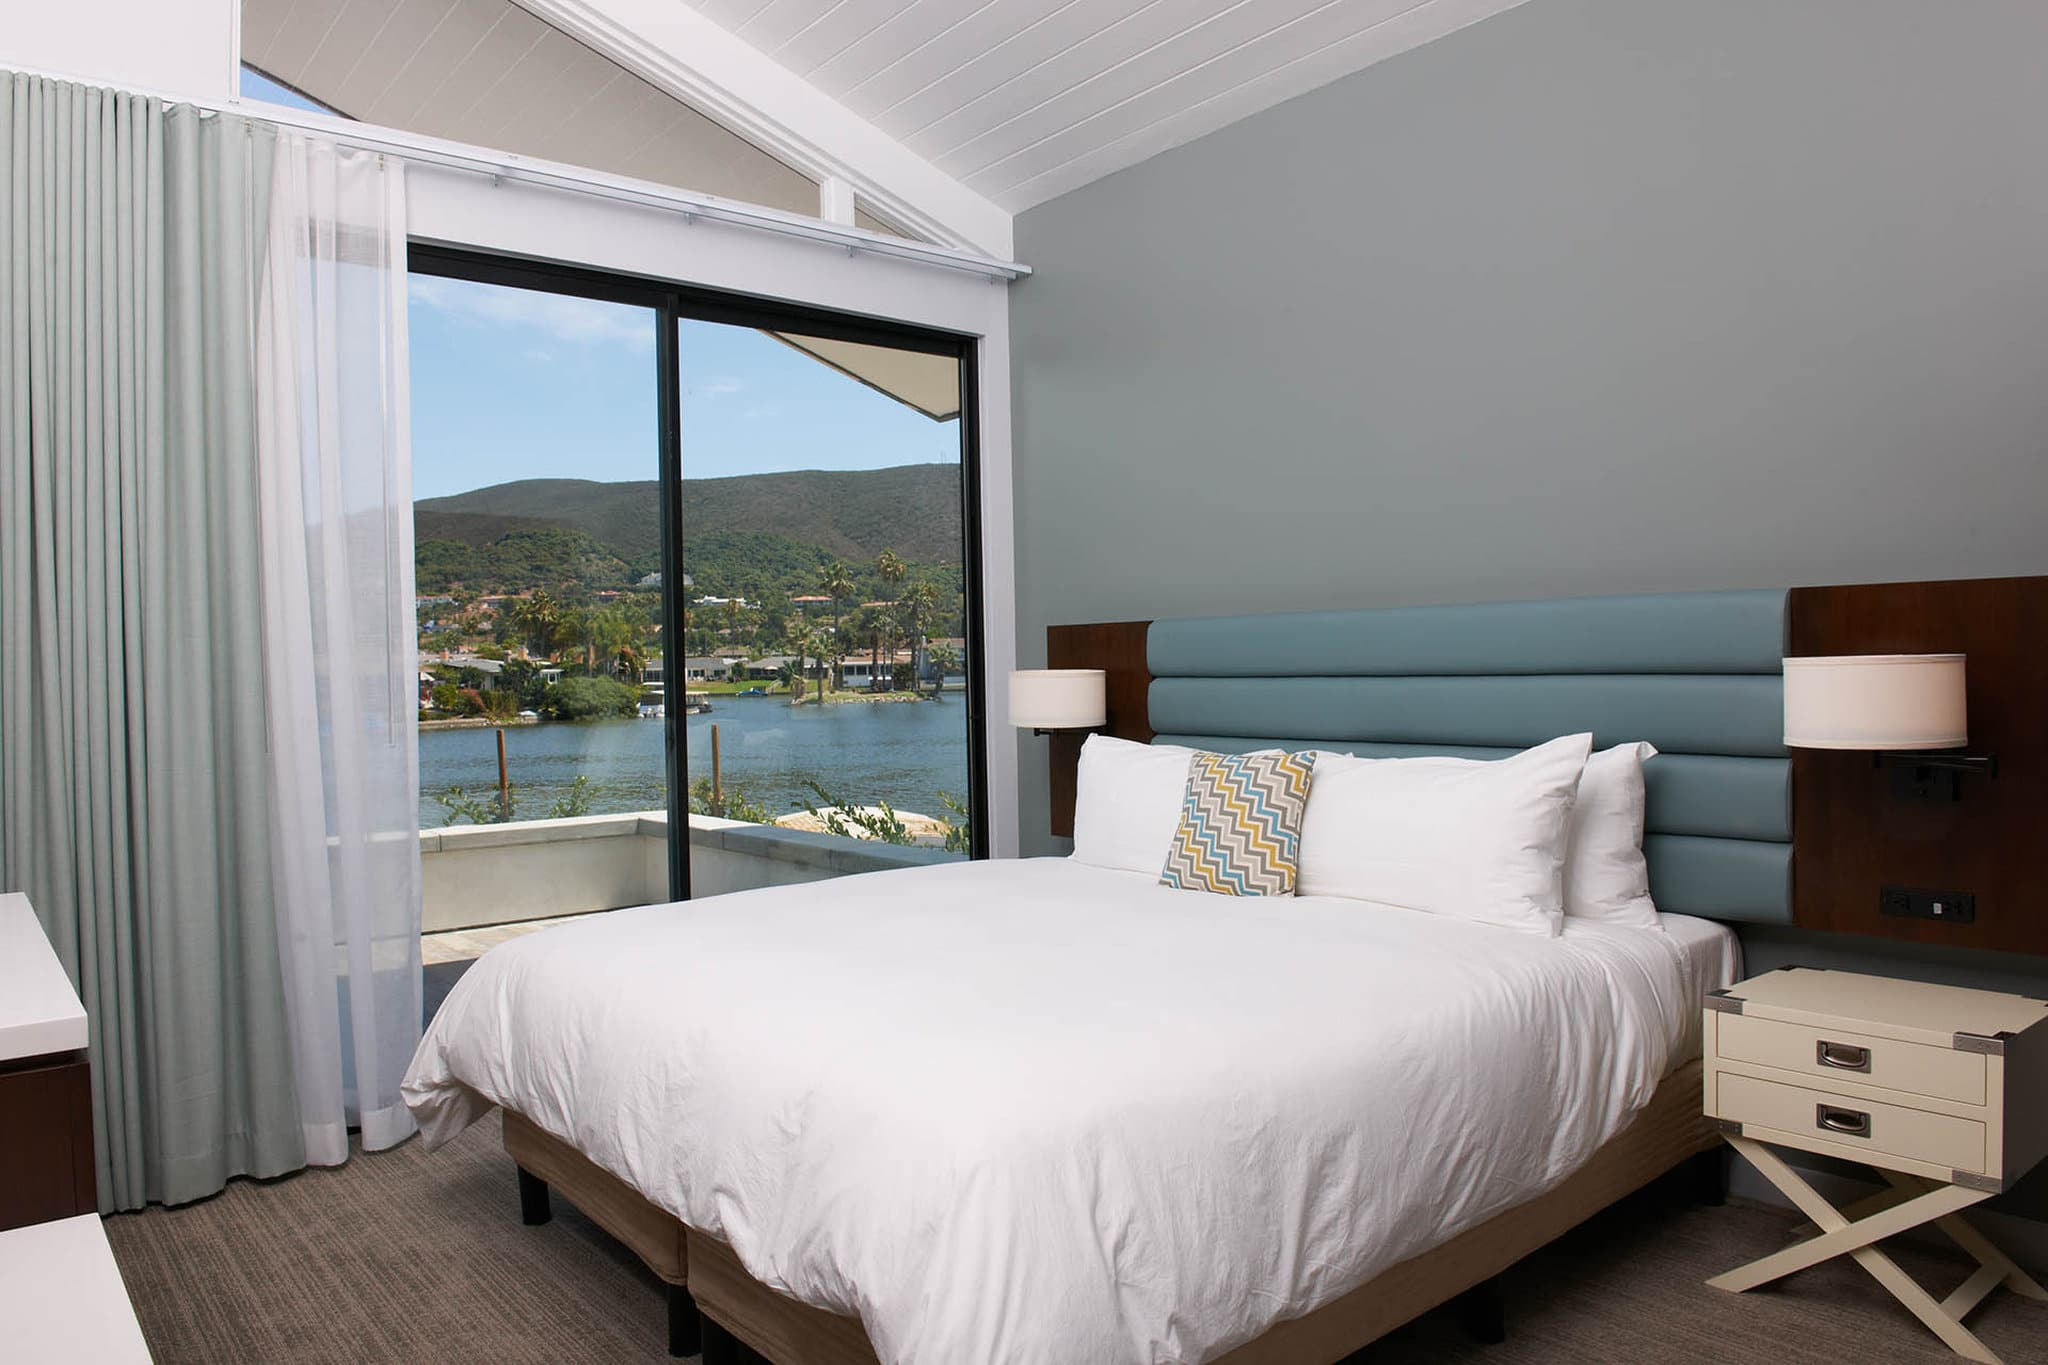 A king room at Lakehouse San Marcos with a view over the lake.